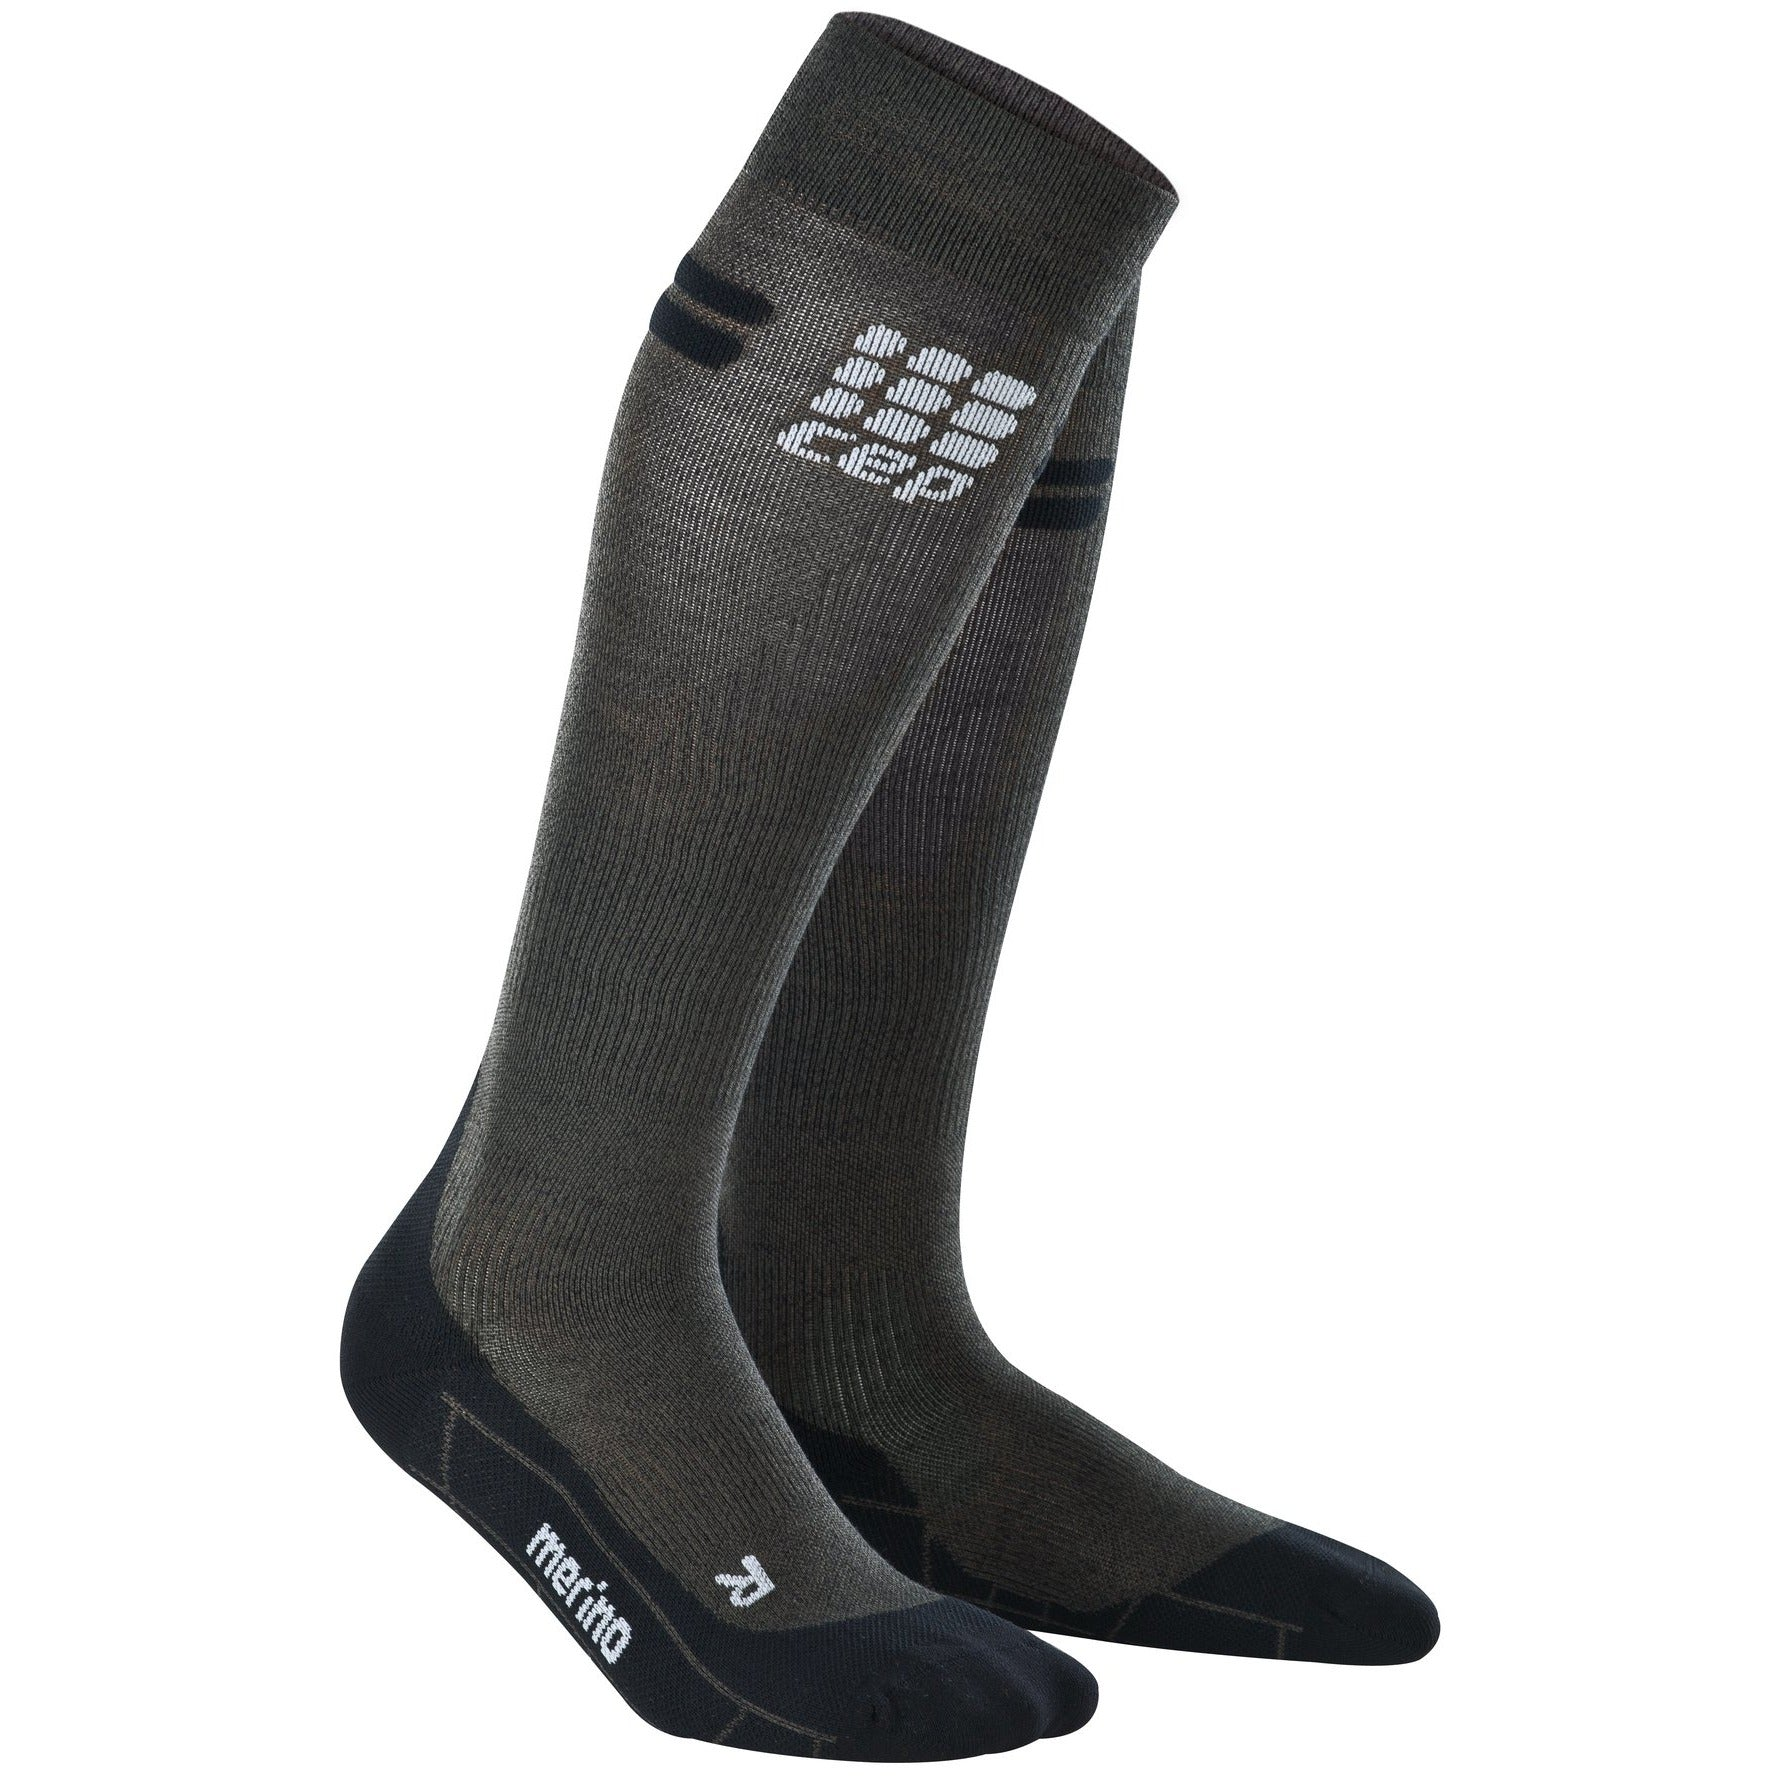 Progressive+ Merino Socks, Women's